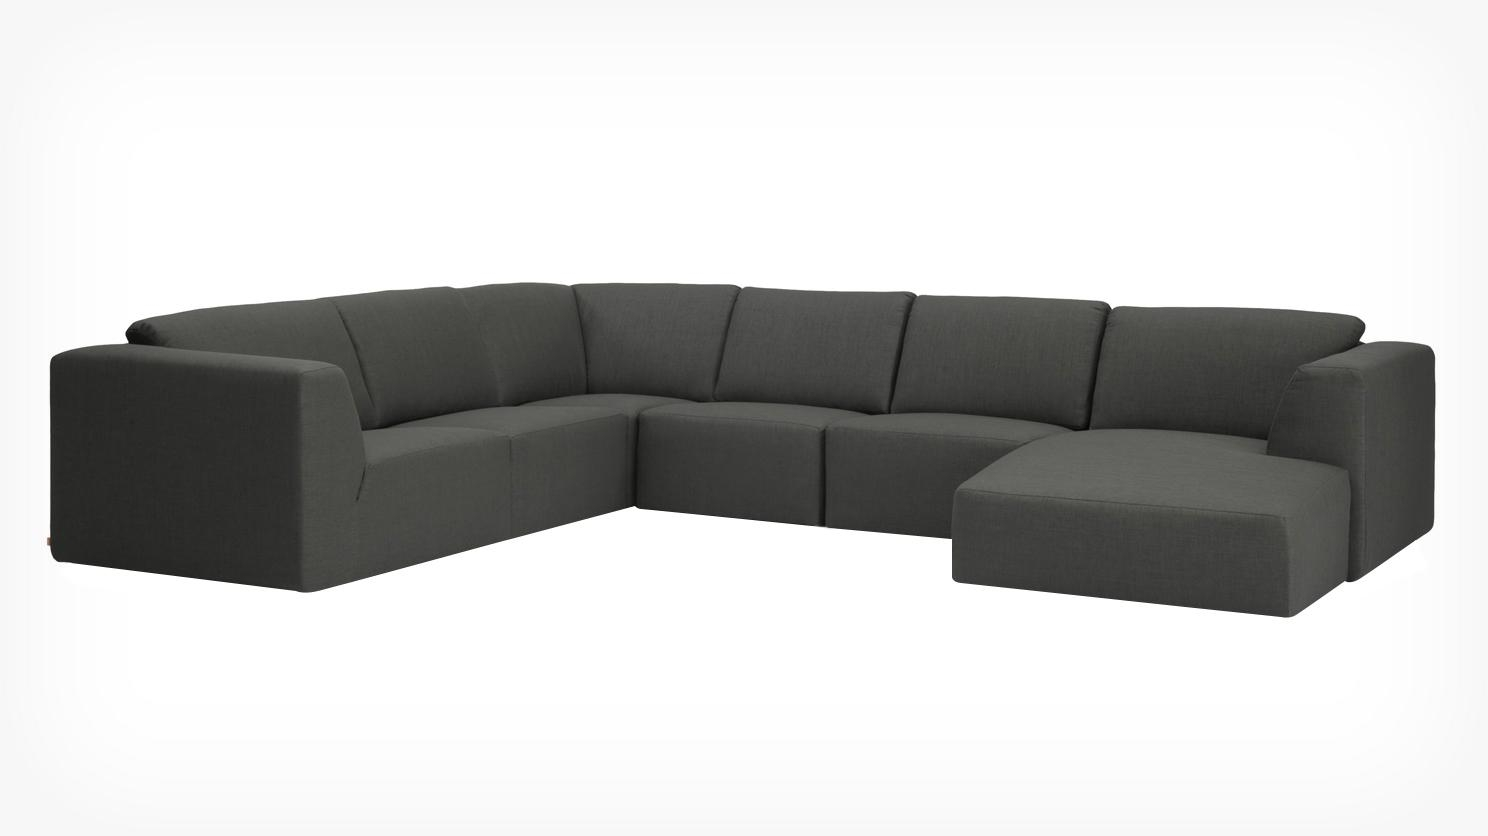 Eq3 | Morten 6 Piece Sectional Sofa With Chaise – Fabric Intended For 6 Piece Sectional Sofas Couches (View 5 of 20)